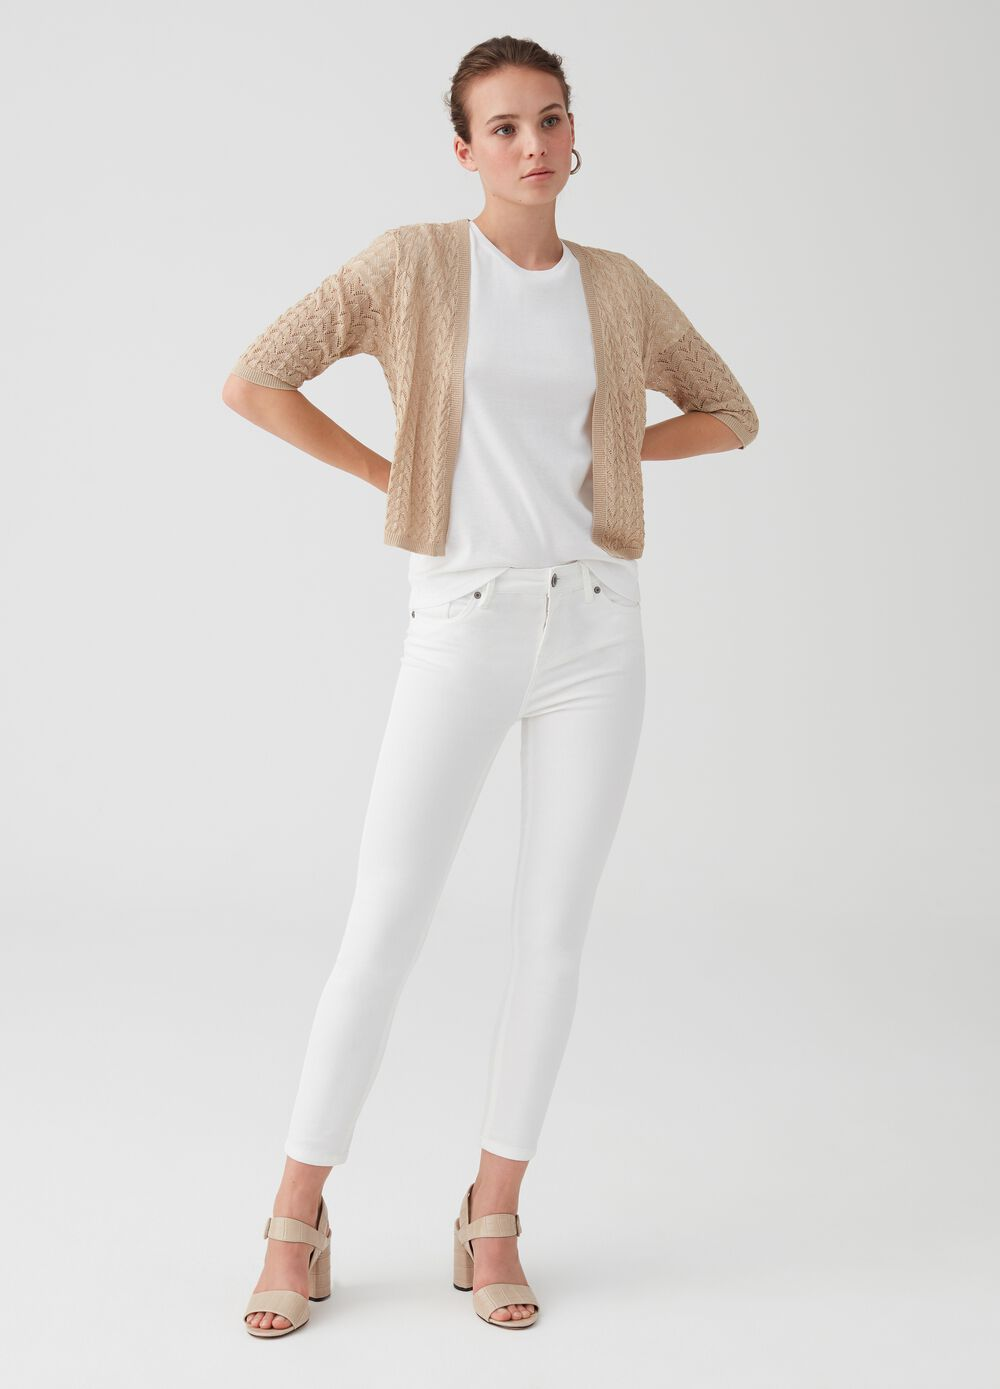 Knitted cardigan with three-quarter sleeves